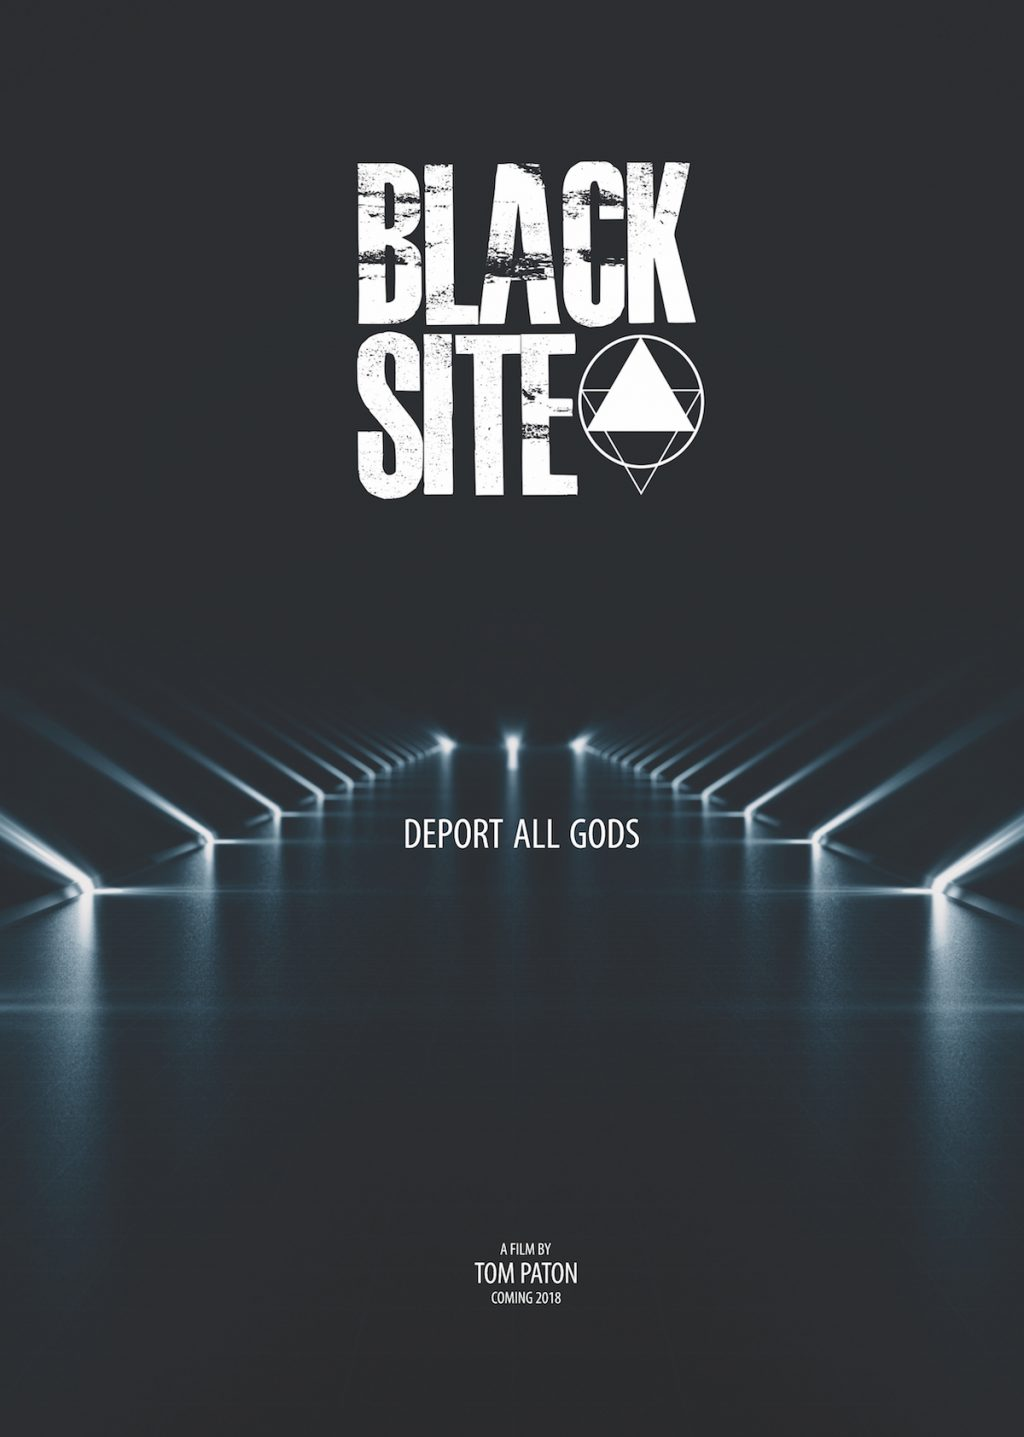 The First 'Black Site' Poster Is Out With A Synopsis!